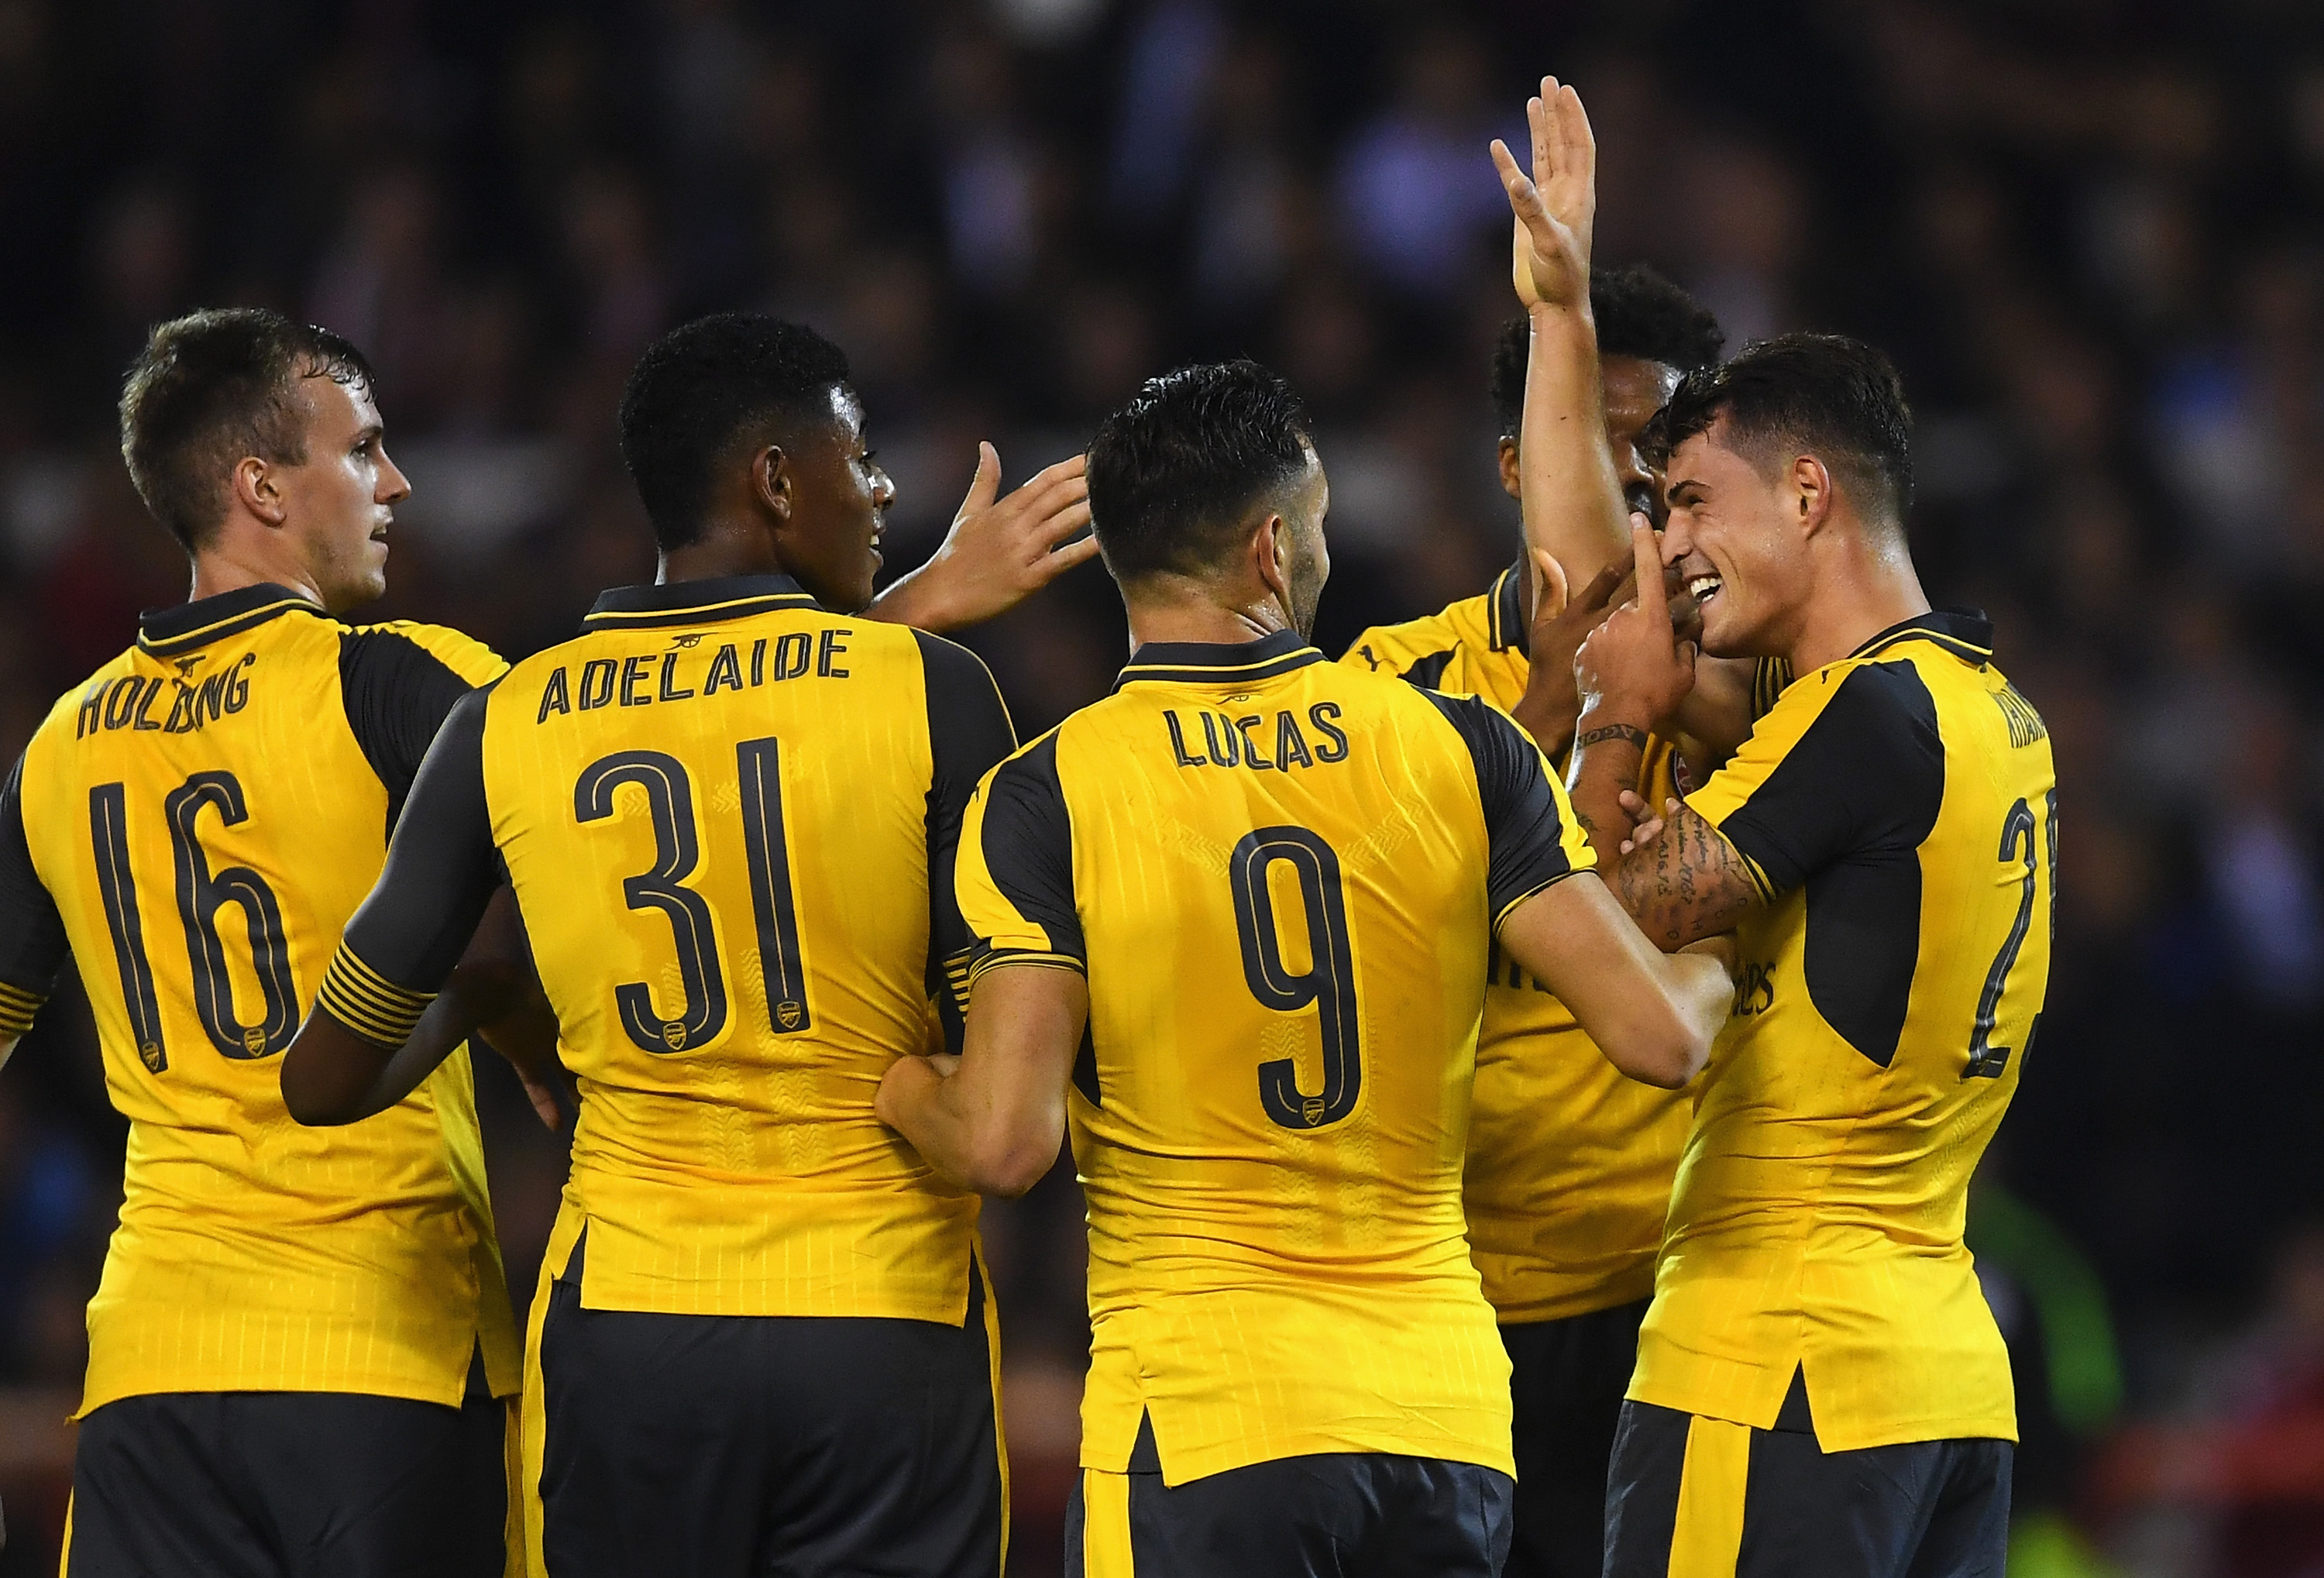 Arsenal must wear yellow away strip at home due to FC Basel kit clash